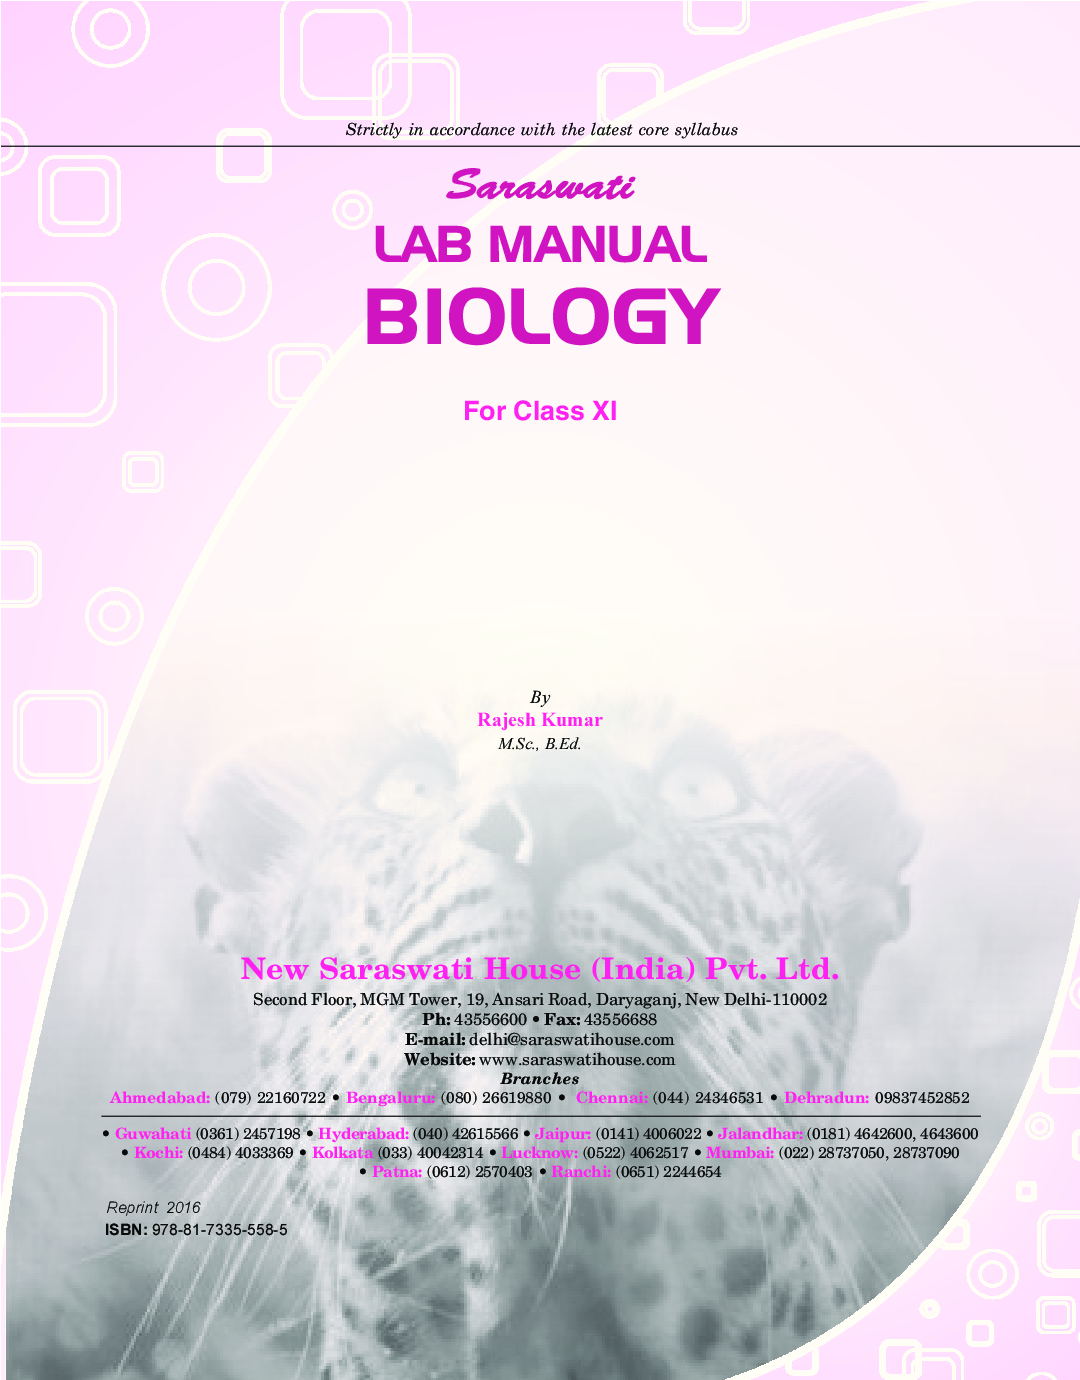 biology lab activity book class xii f Array - download saraswati lab manual  biology class xi by rajesh kumar pdf rh kopykitab com